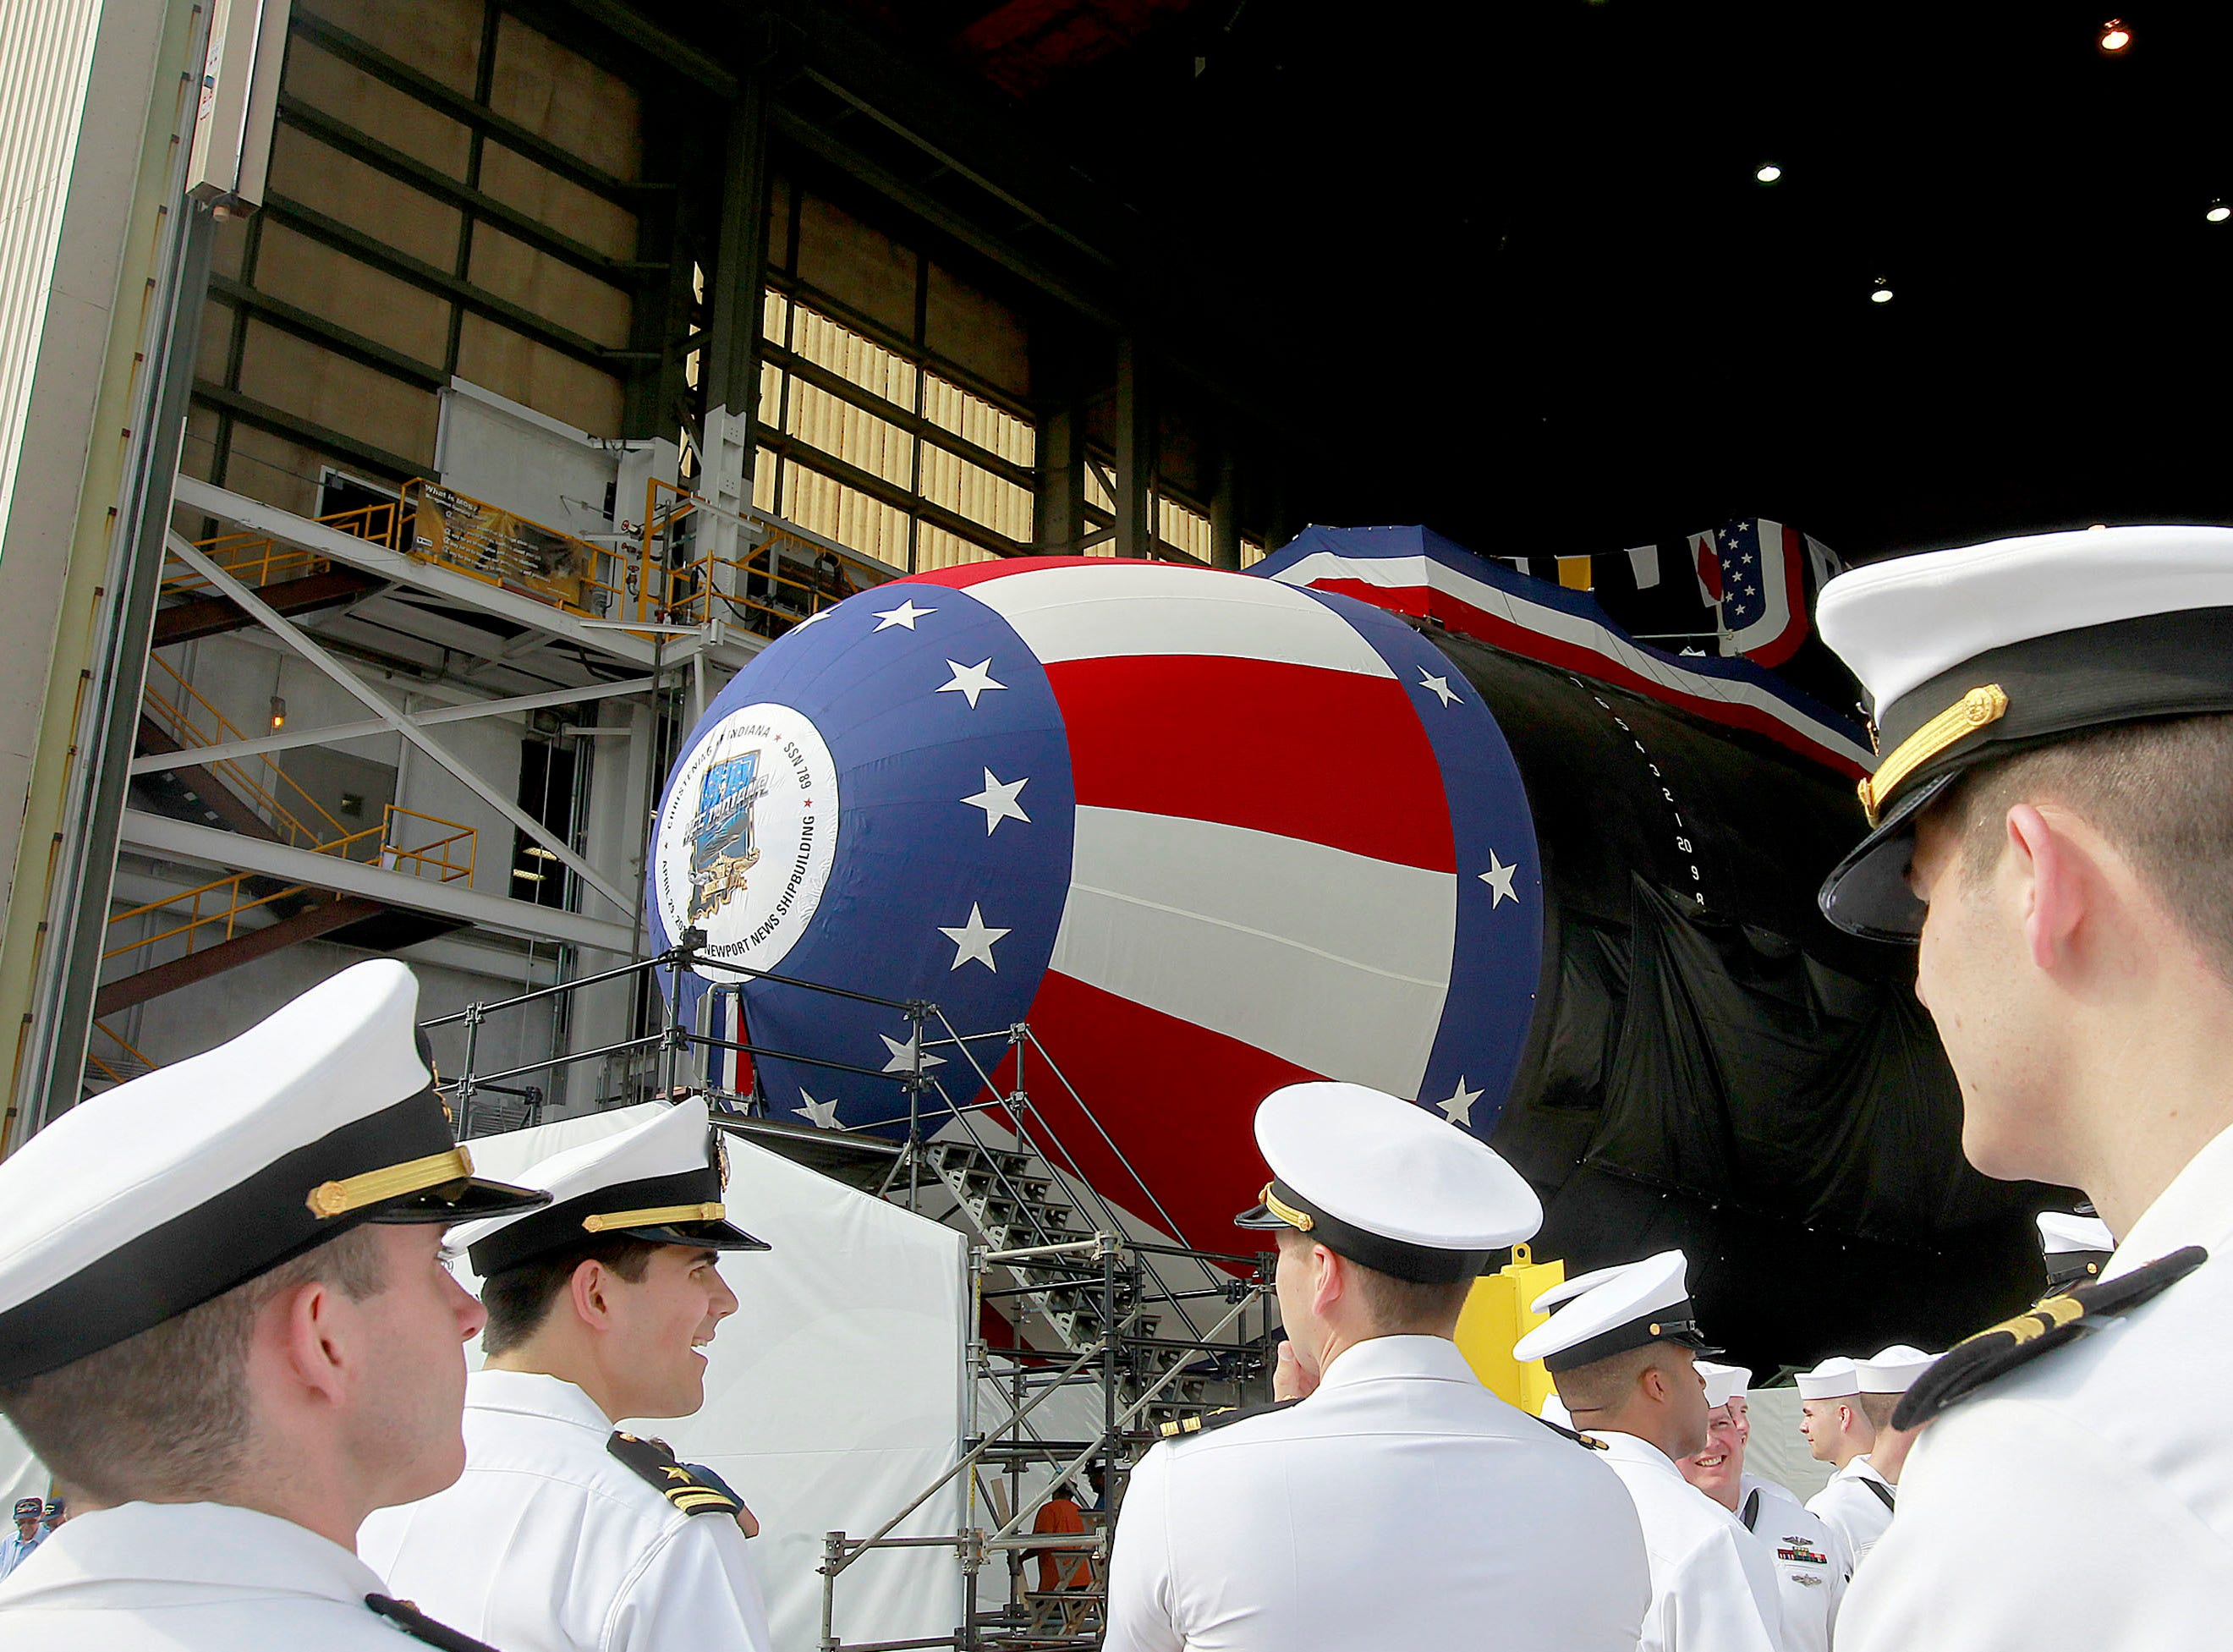 Crew members of the Virginia-class submarine USS Indiana get ready for christening ceremonies Friday April 28, 2017 at Newport News Shipbuilding in Newport News, Va. The ship will be christened Saturday with a crowd of about 4000 expected along with Vice President Mike Pence.